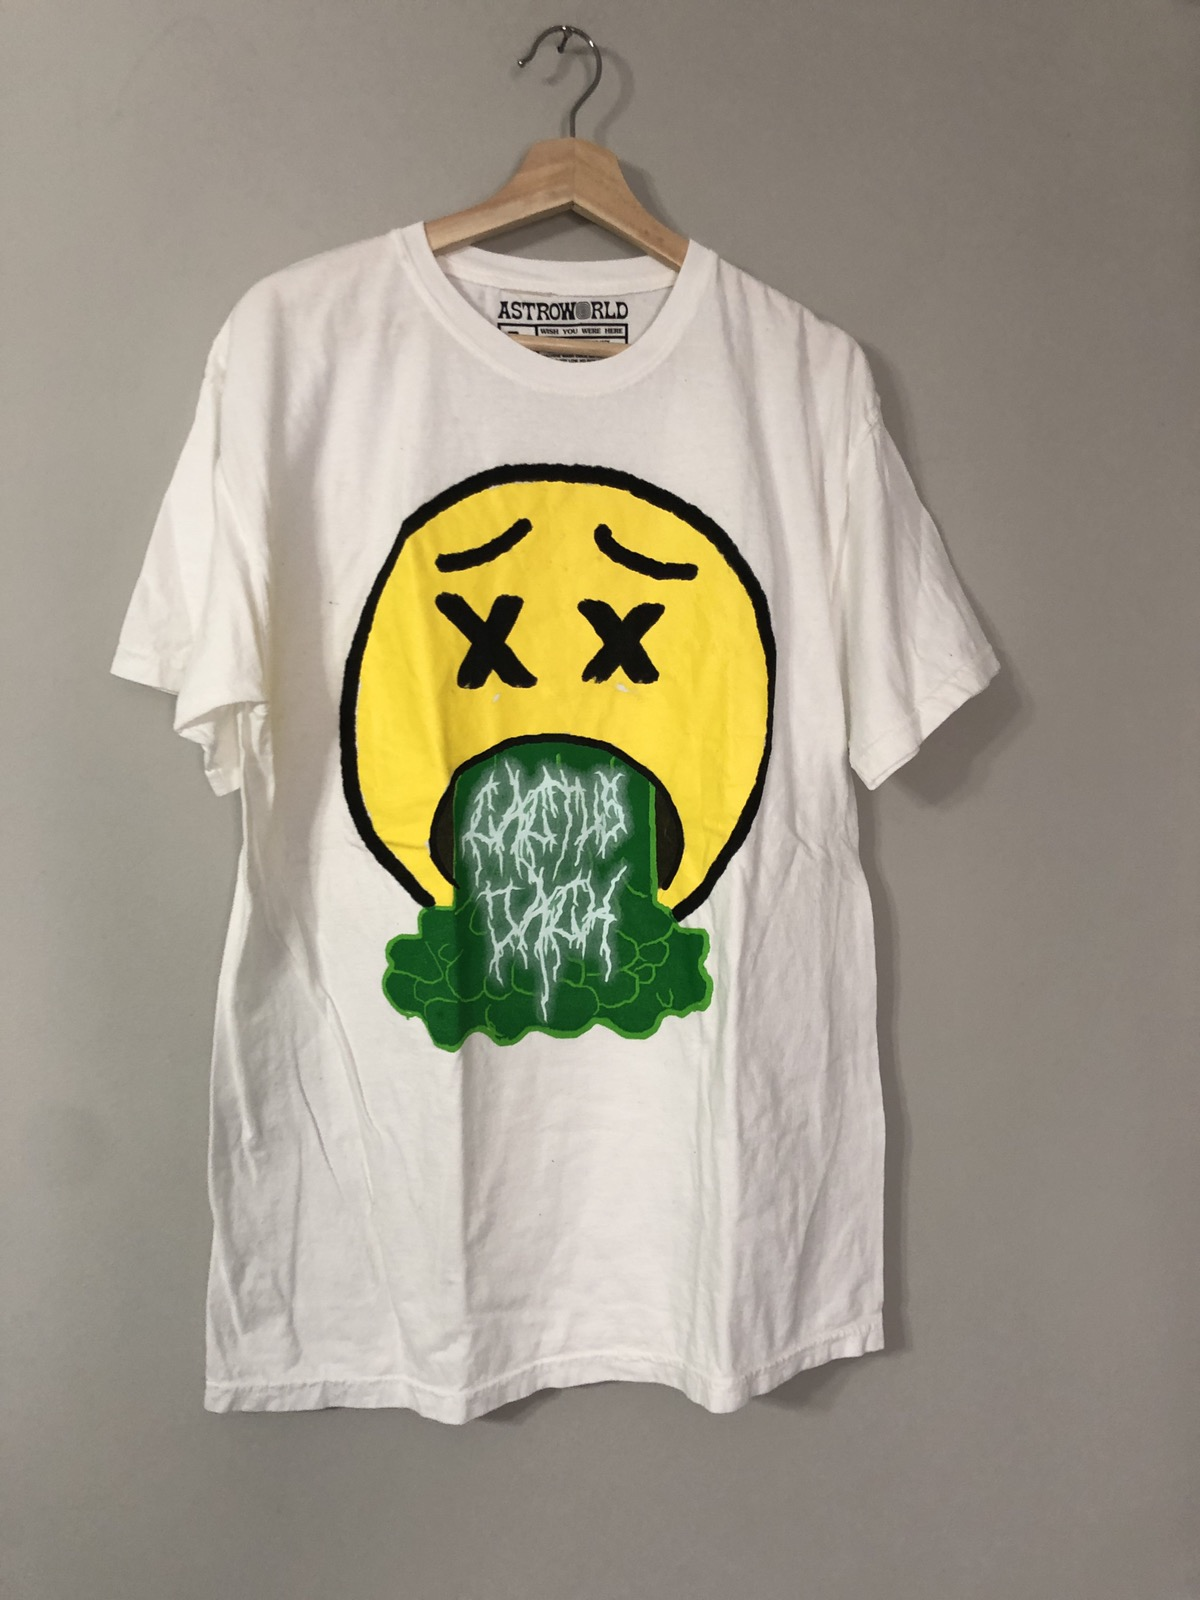 7bcb4820b8f0 Travis Scott ×. Unreleased Sicko Mode Emoji Travis Scott Astroworld Shirt